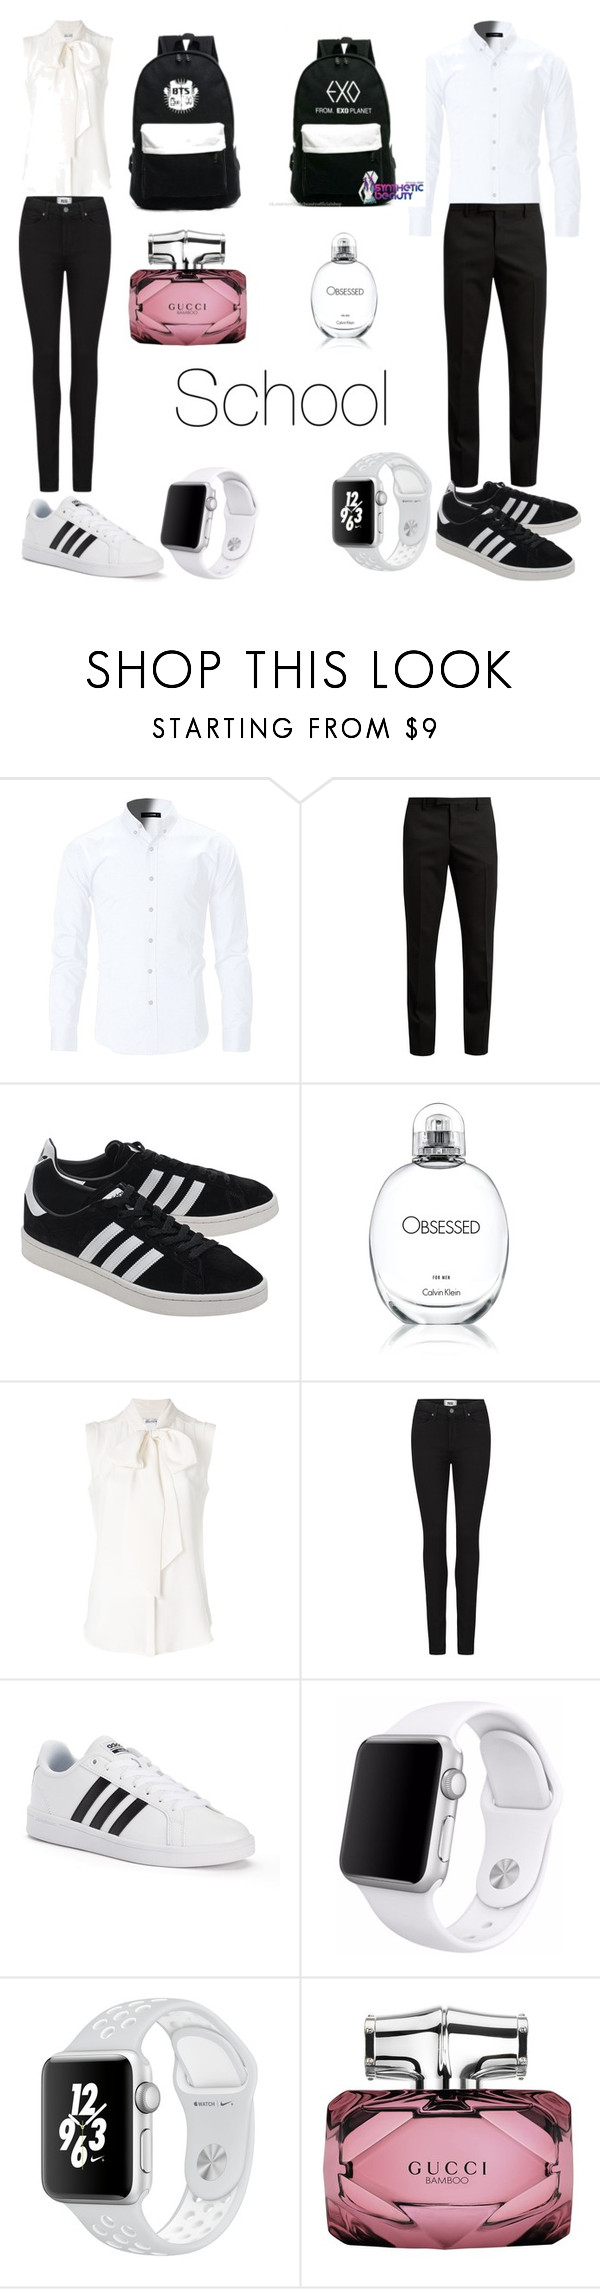 """""""Untitled #52"""" by explorer-14999030865 ❤ liked on Polyvore featuring Yves Saint Laurent, adidas Originals, Calvin Klein, MaxMara, Paige Denim, adidas, Apple and Gucci"""